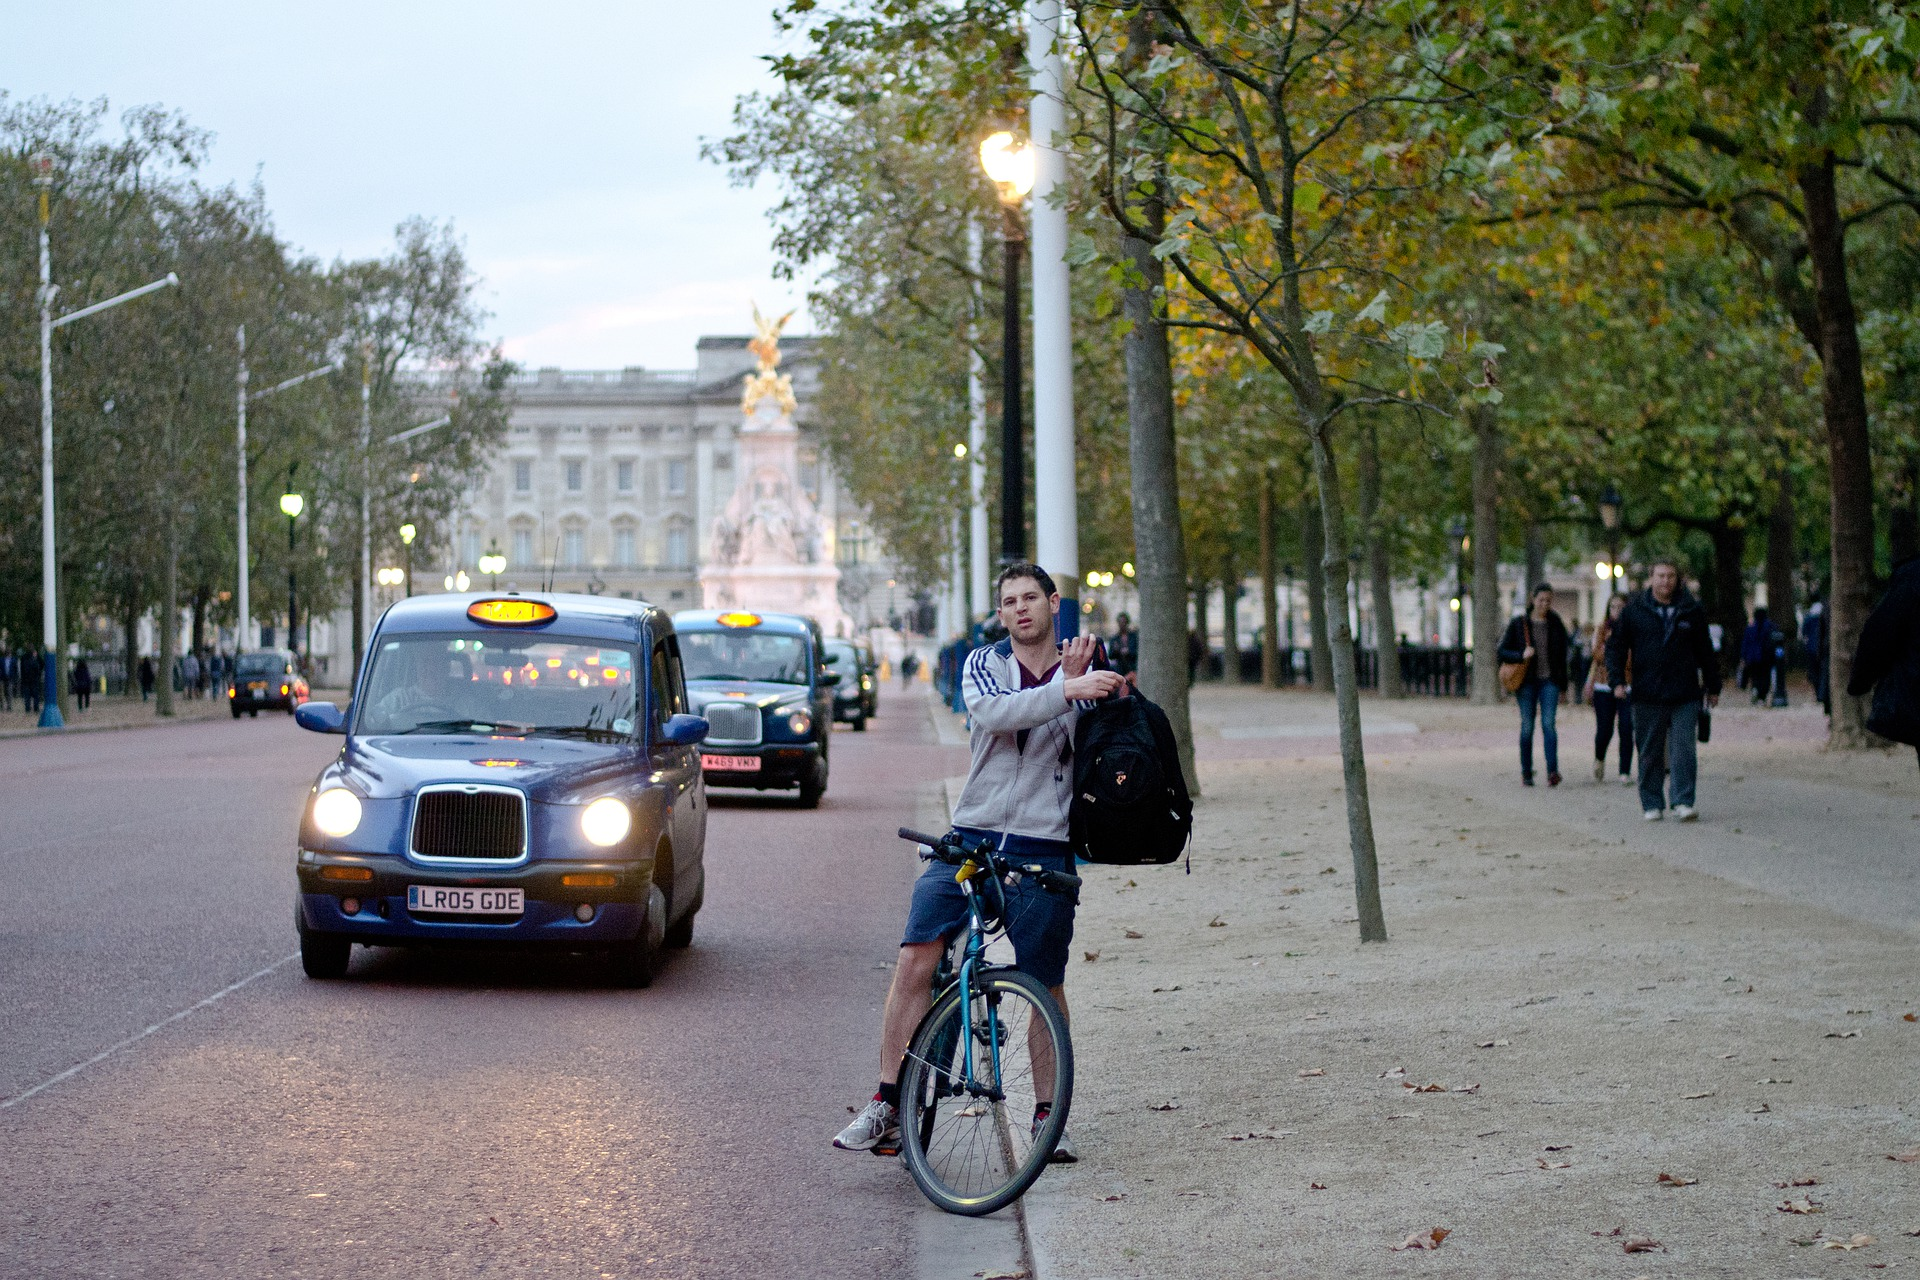 - street photography 5678719 1920 - Government's must reallocate road space, says new report